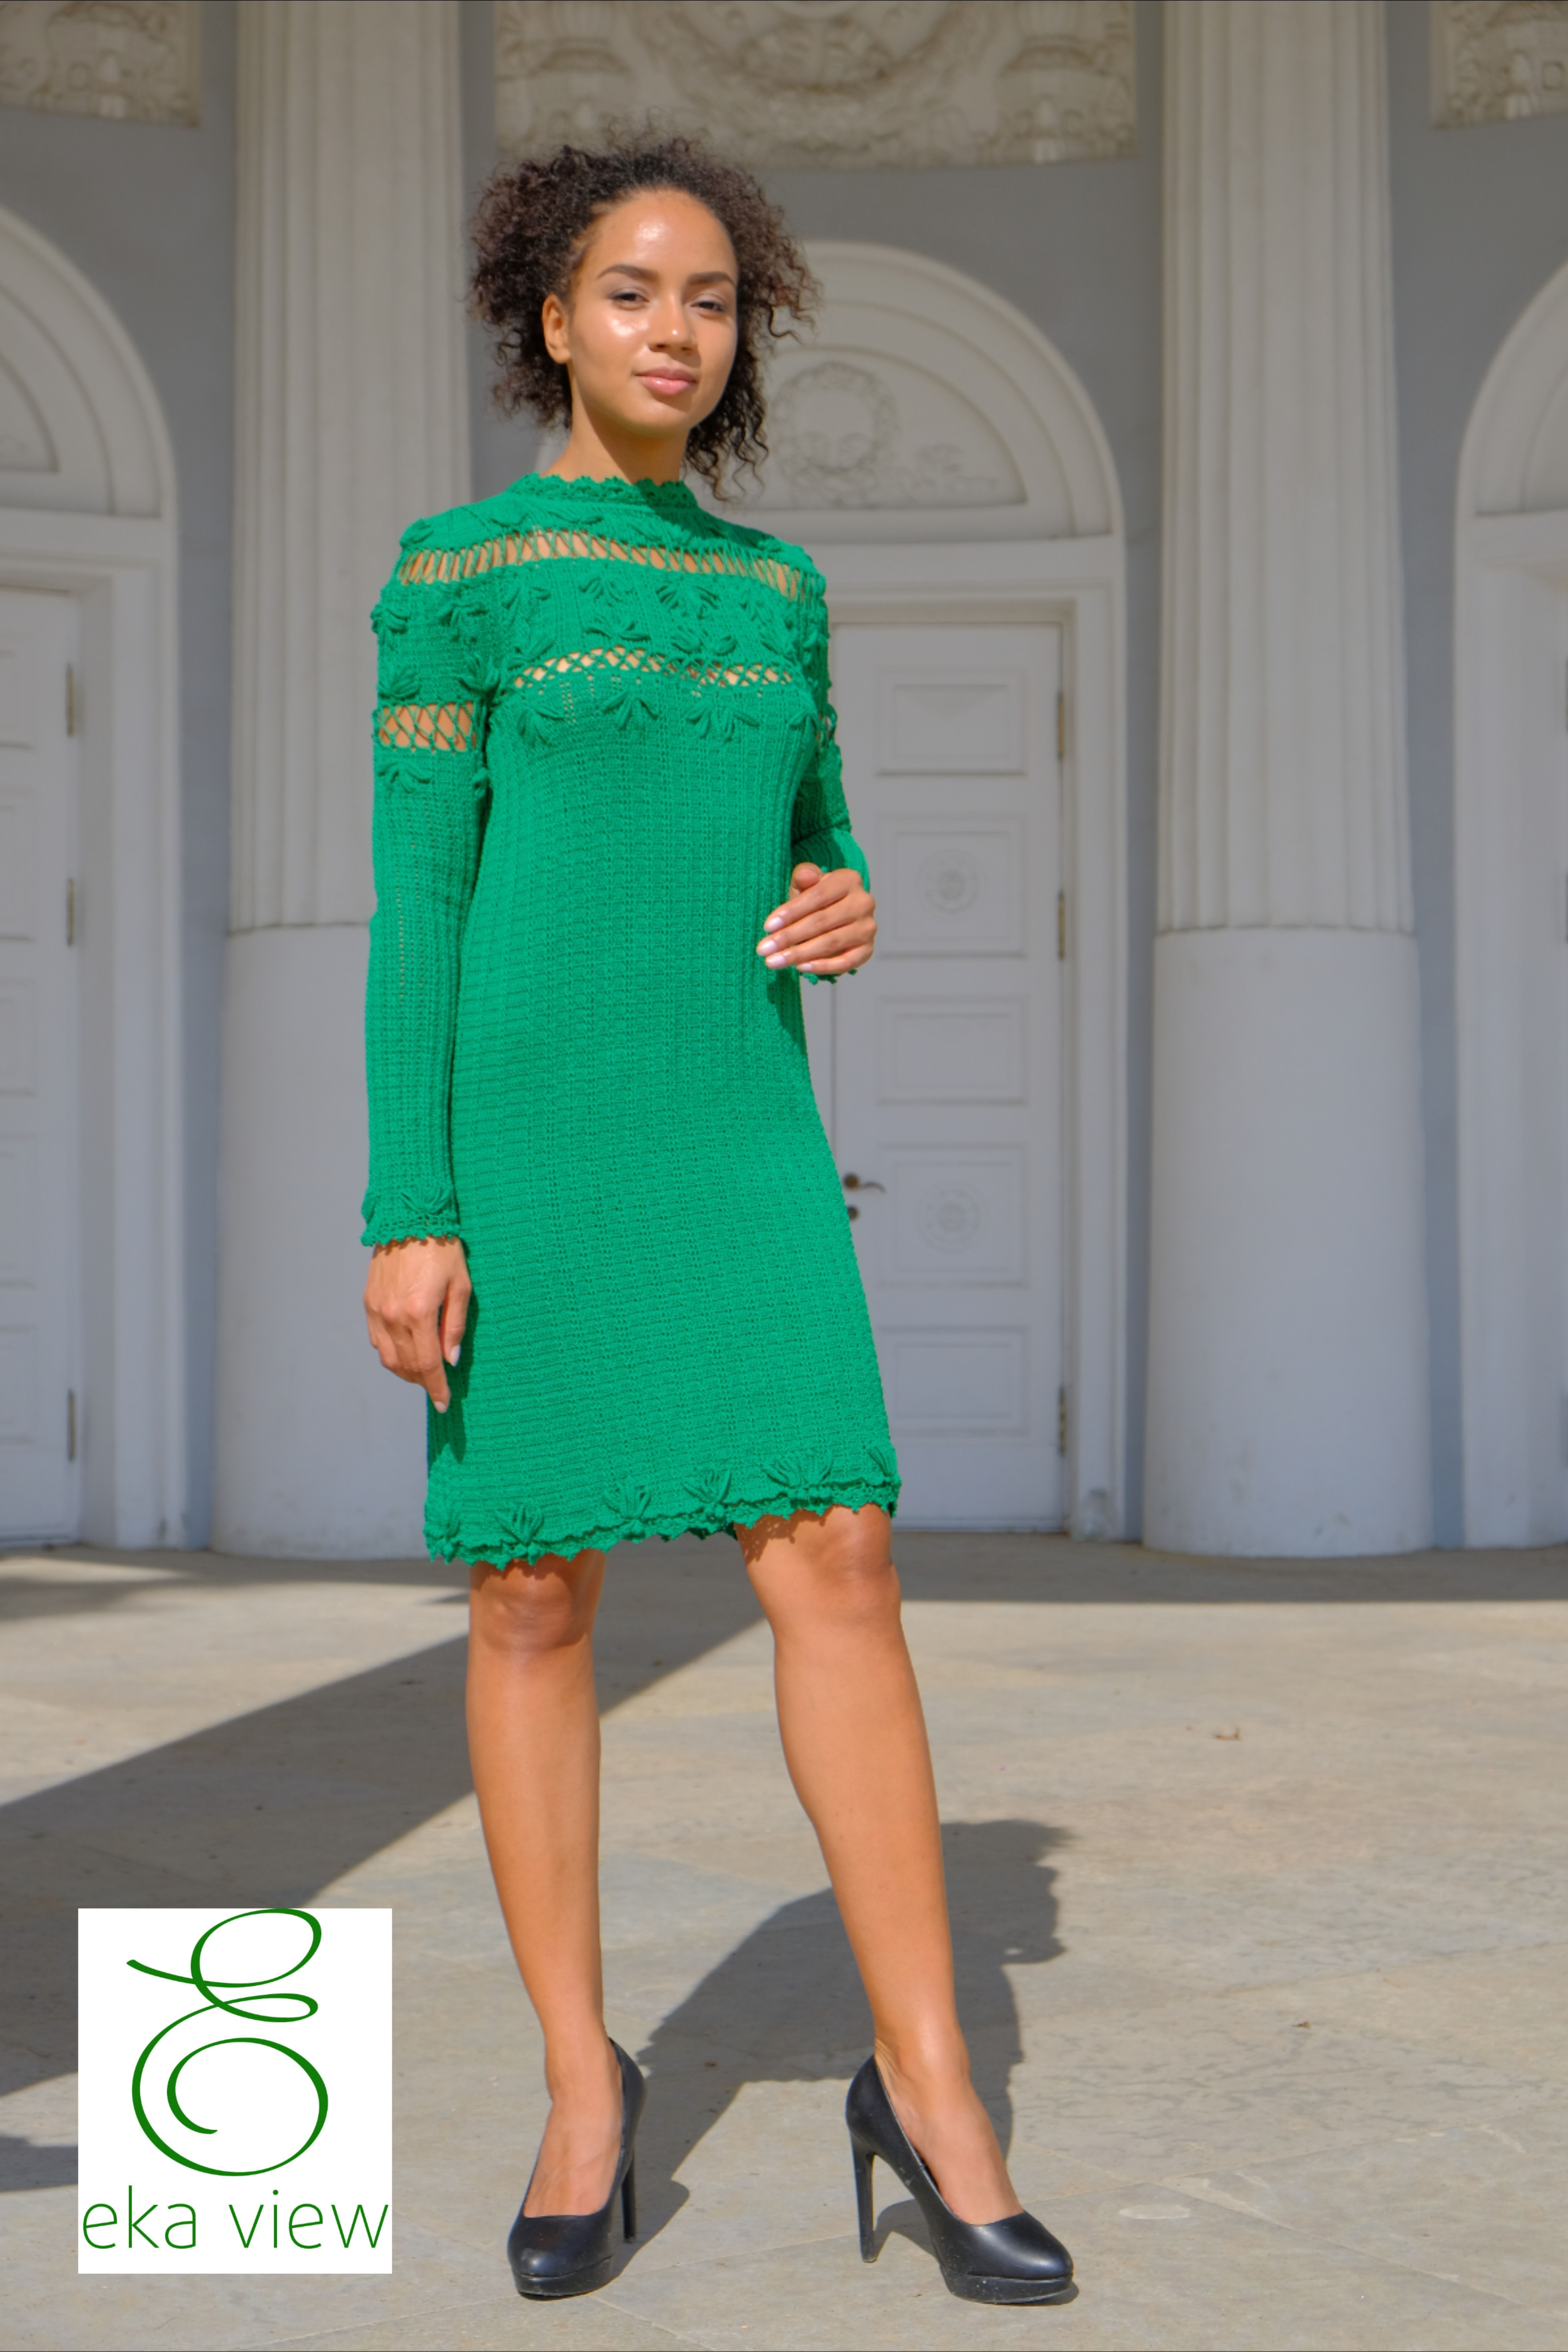 Crochet Straight Fitted Dress Dark Green Occasion Dress With Etsy In 2021 Bright Dress Casual Style Outfits Strapless Bodycon Dress [ 9000 x 6000 Pixel ]